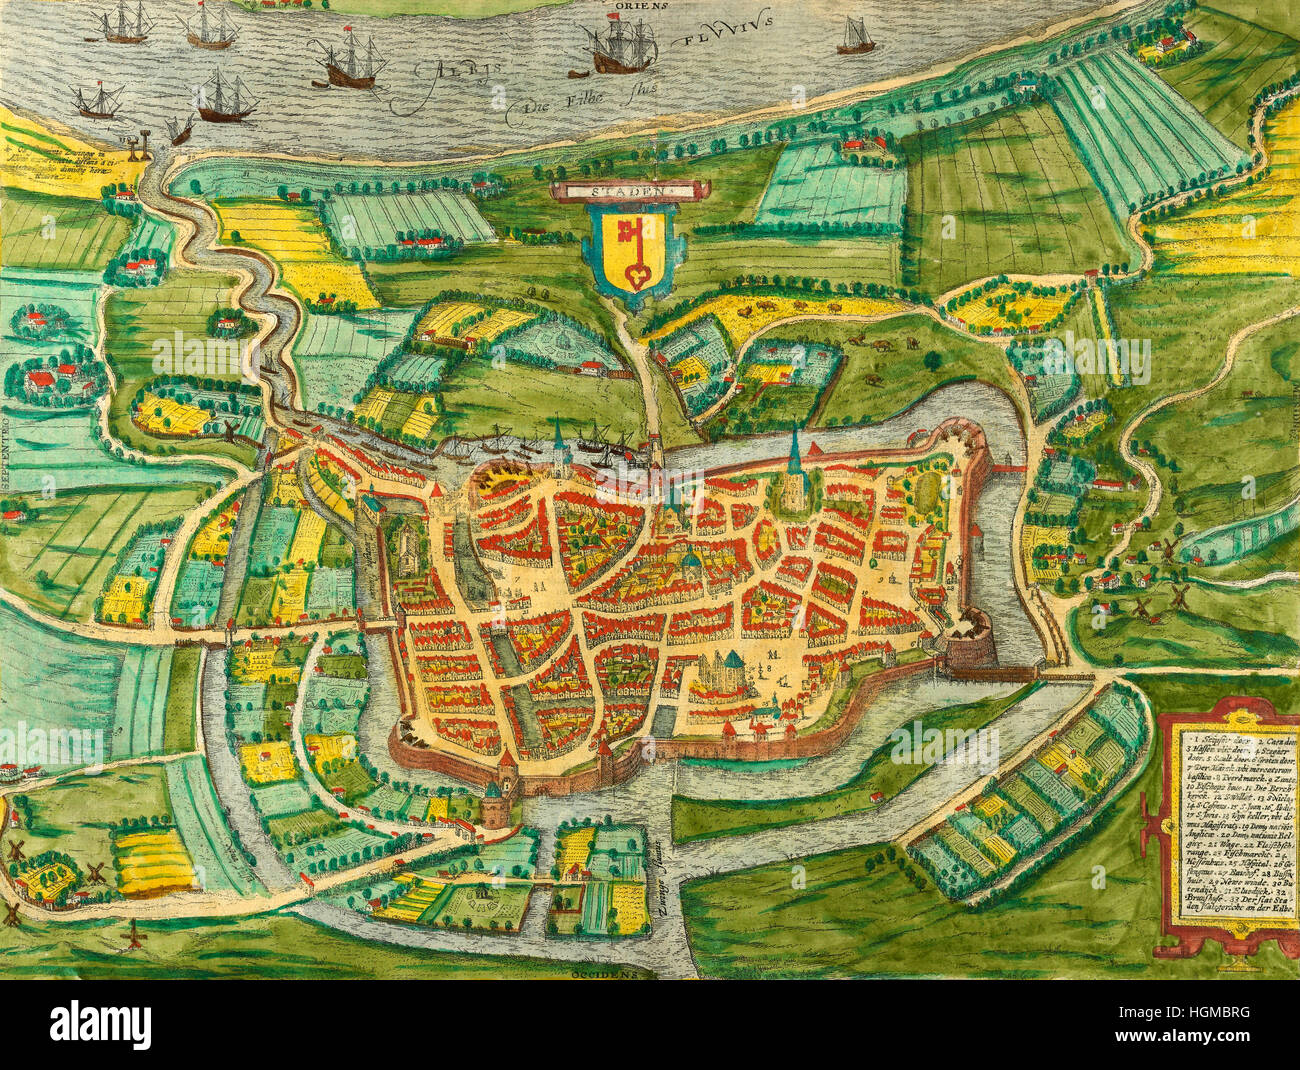 Old Map Of Amsterdam Stock Photos Old Map Of Amsterdam Stock - Amsterdam old map